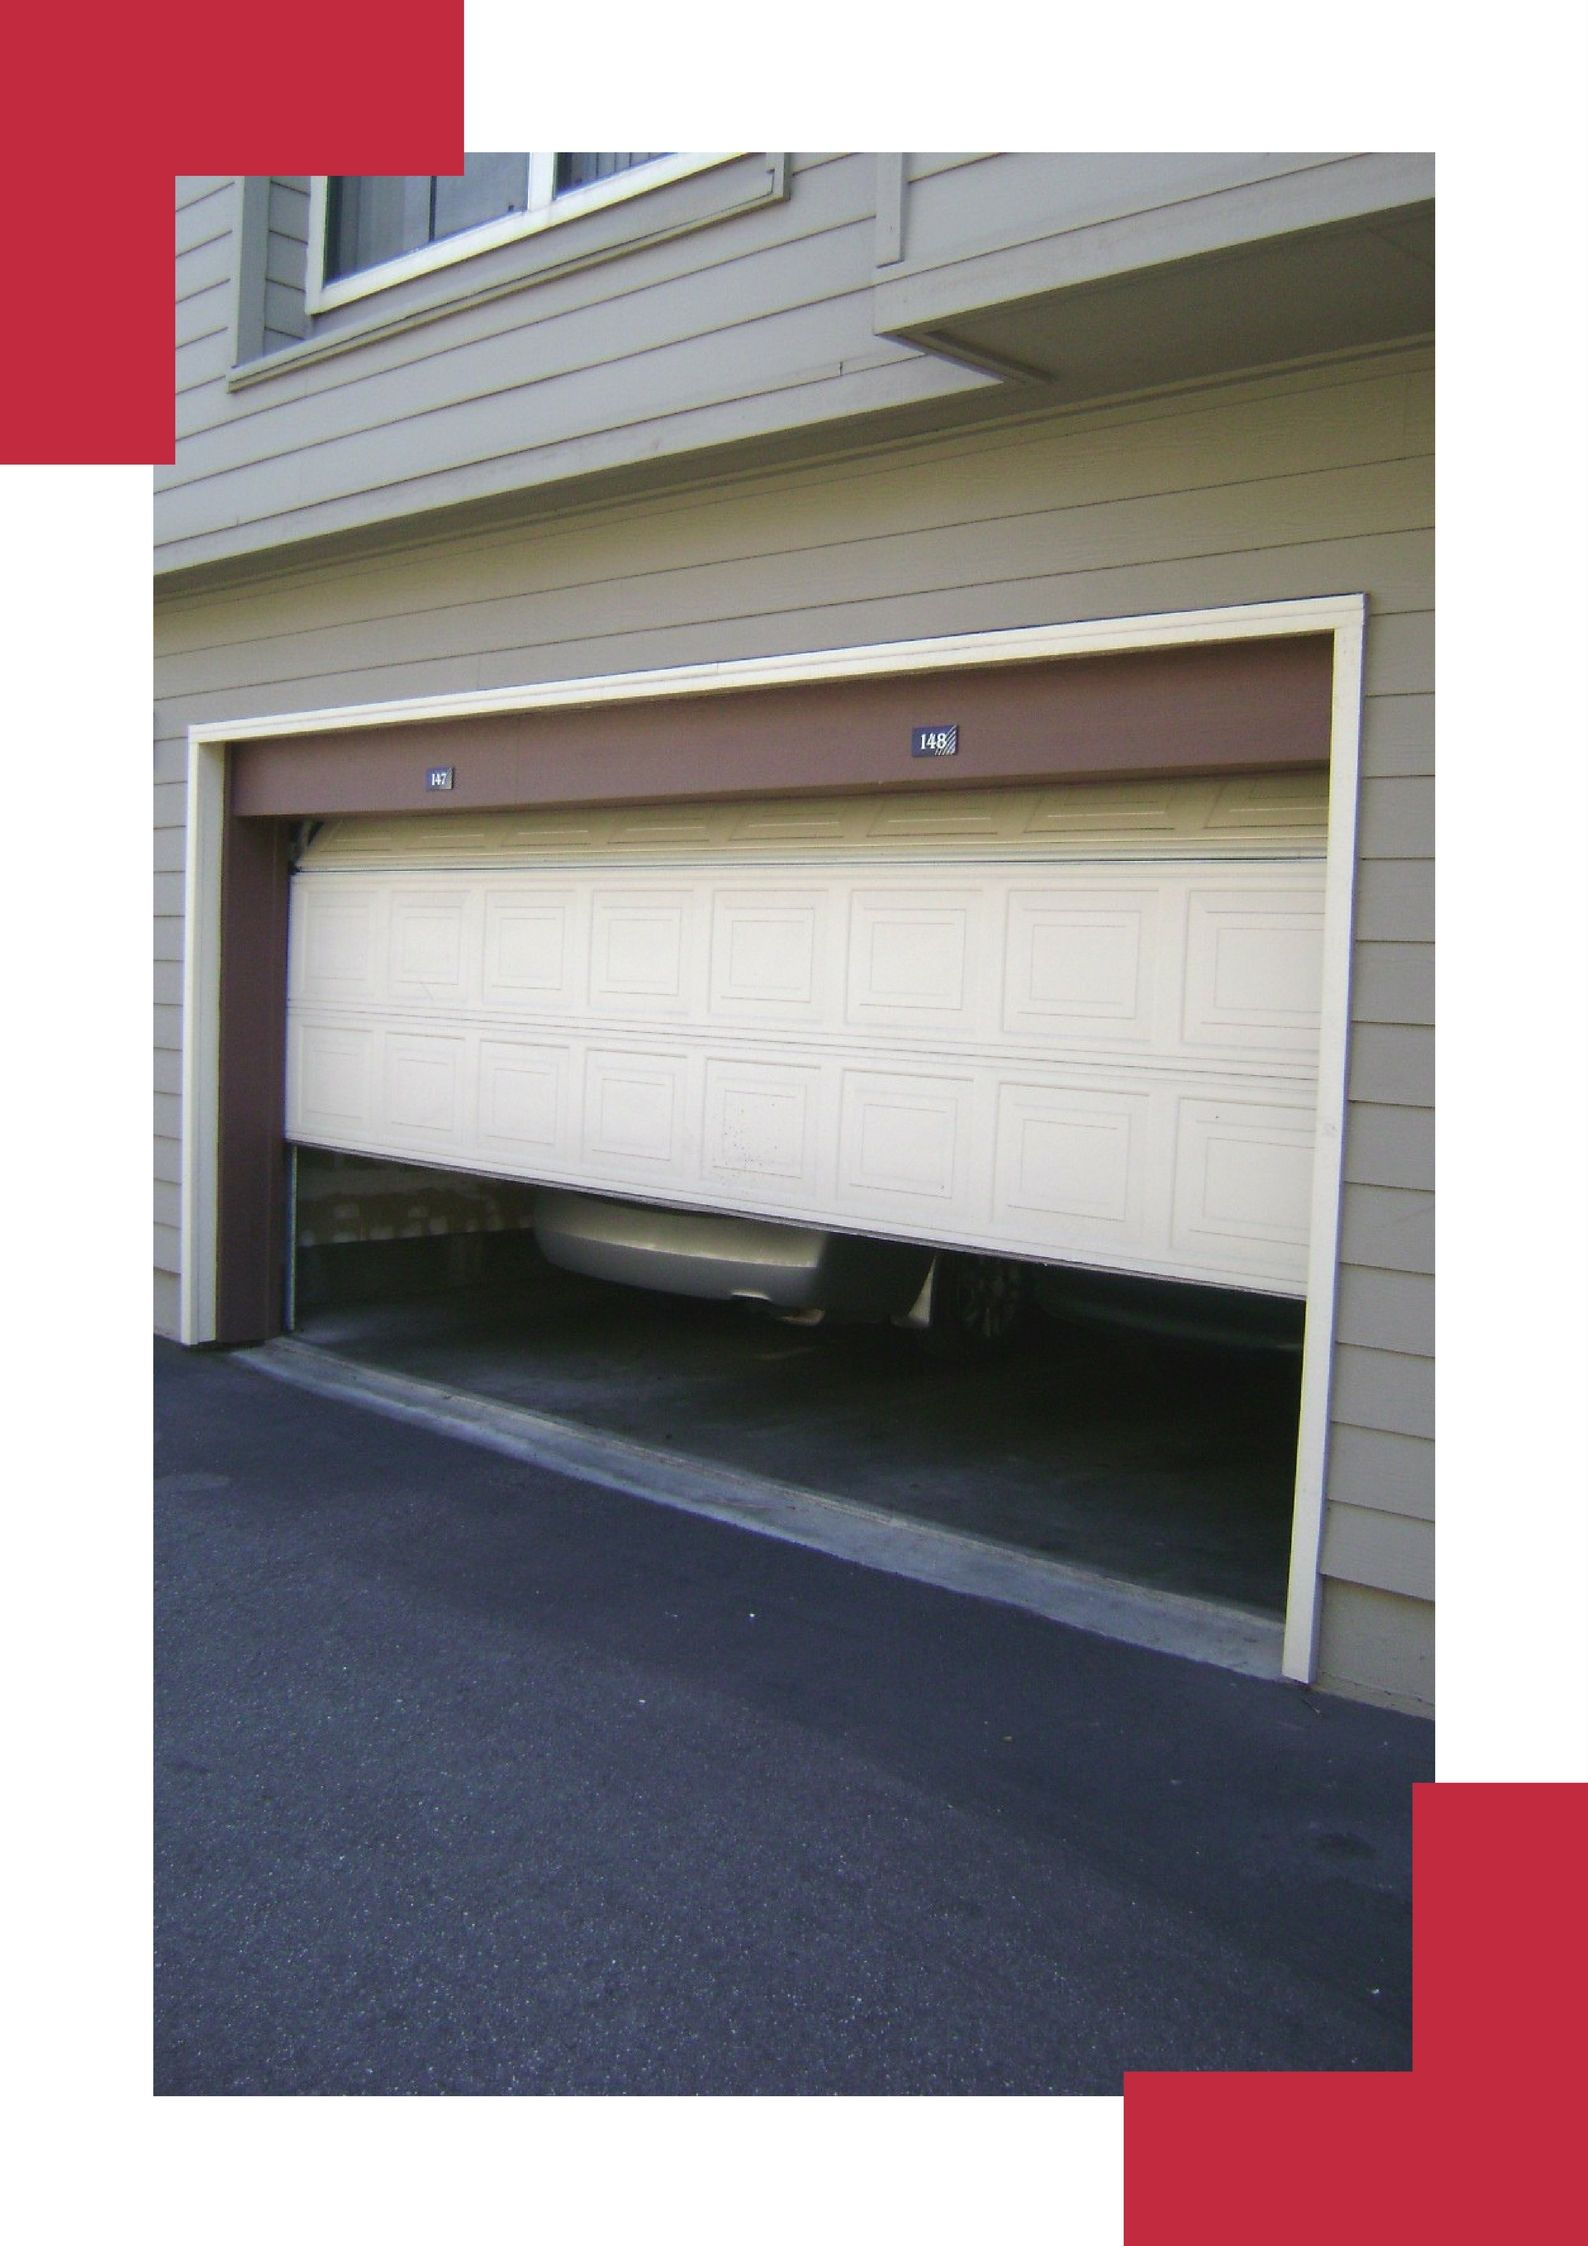 Automatic Garage Doors Are Powerful Quiet And Durable Garage Door Springs Garage Doors Residential Garage Doors